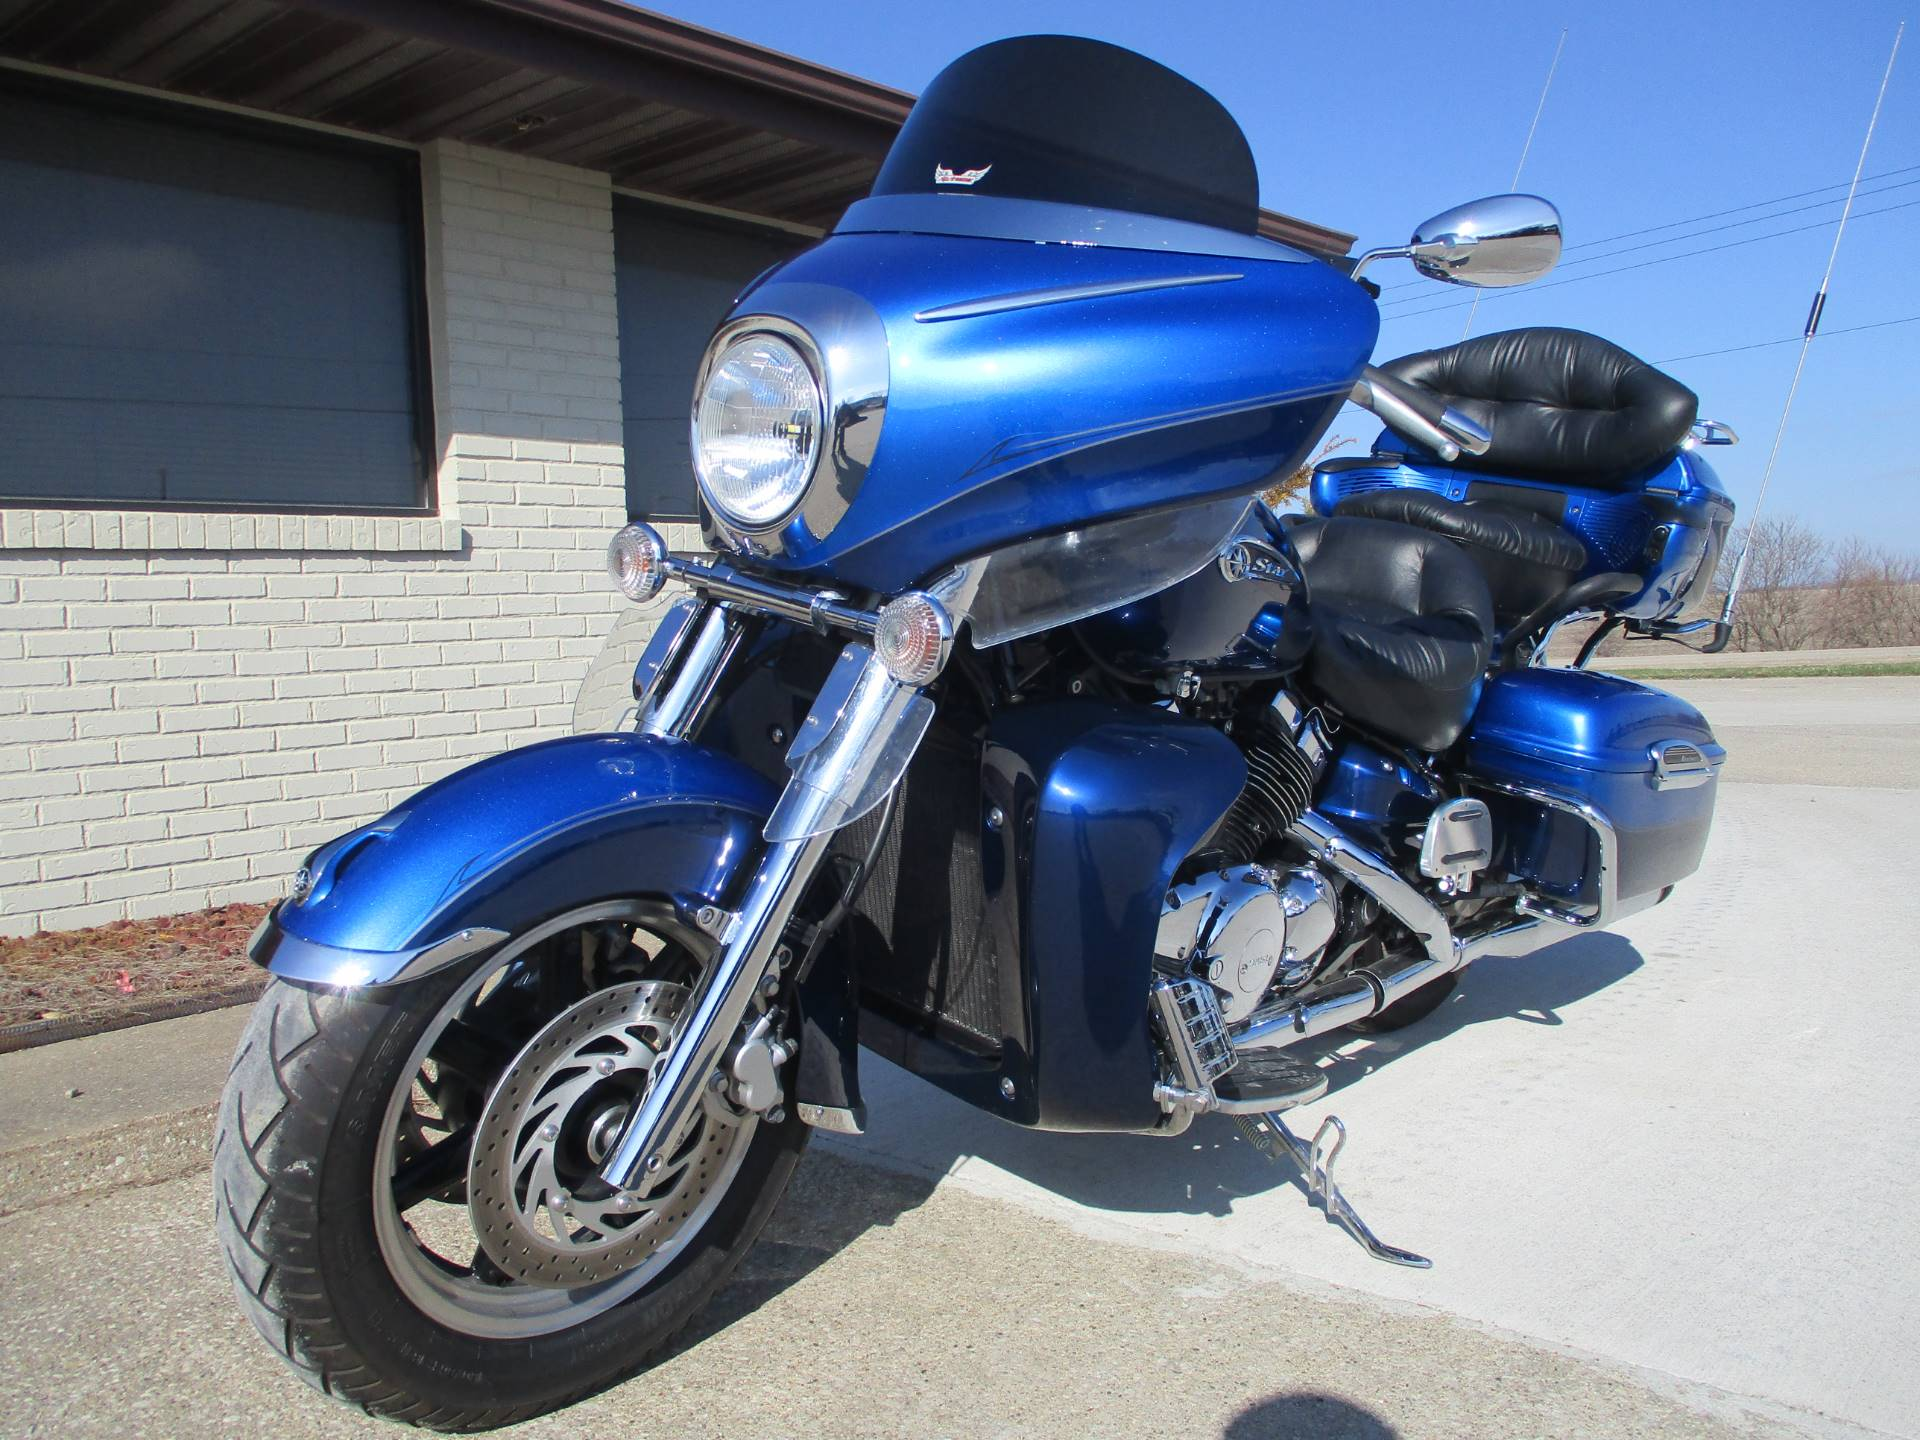 2011 Yamaha Royal Star Venture S in Winterset, Iowa - Photo 4